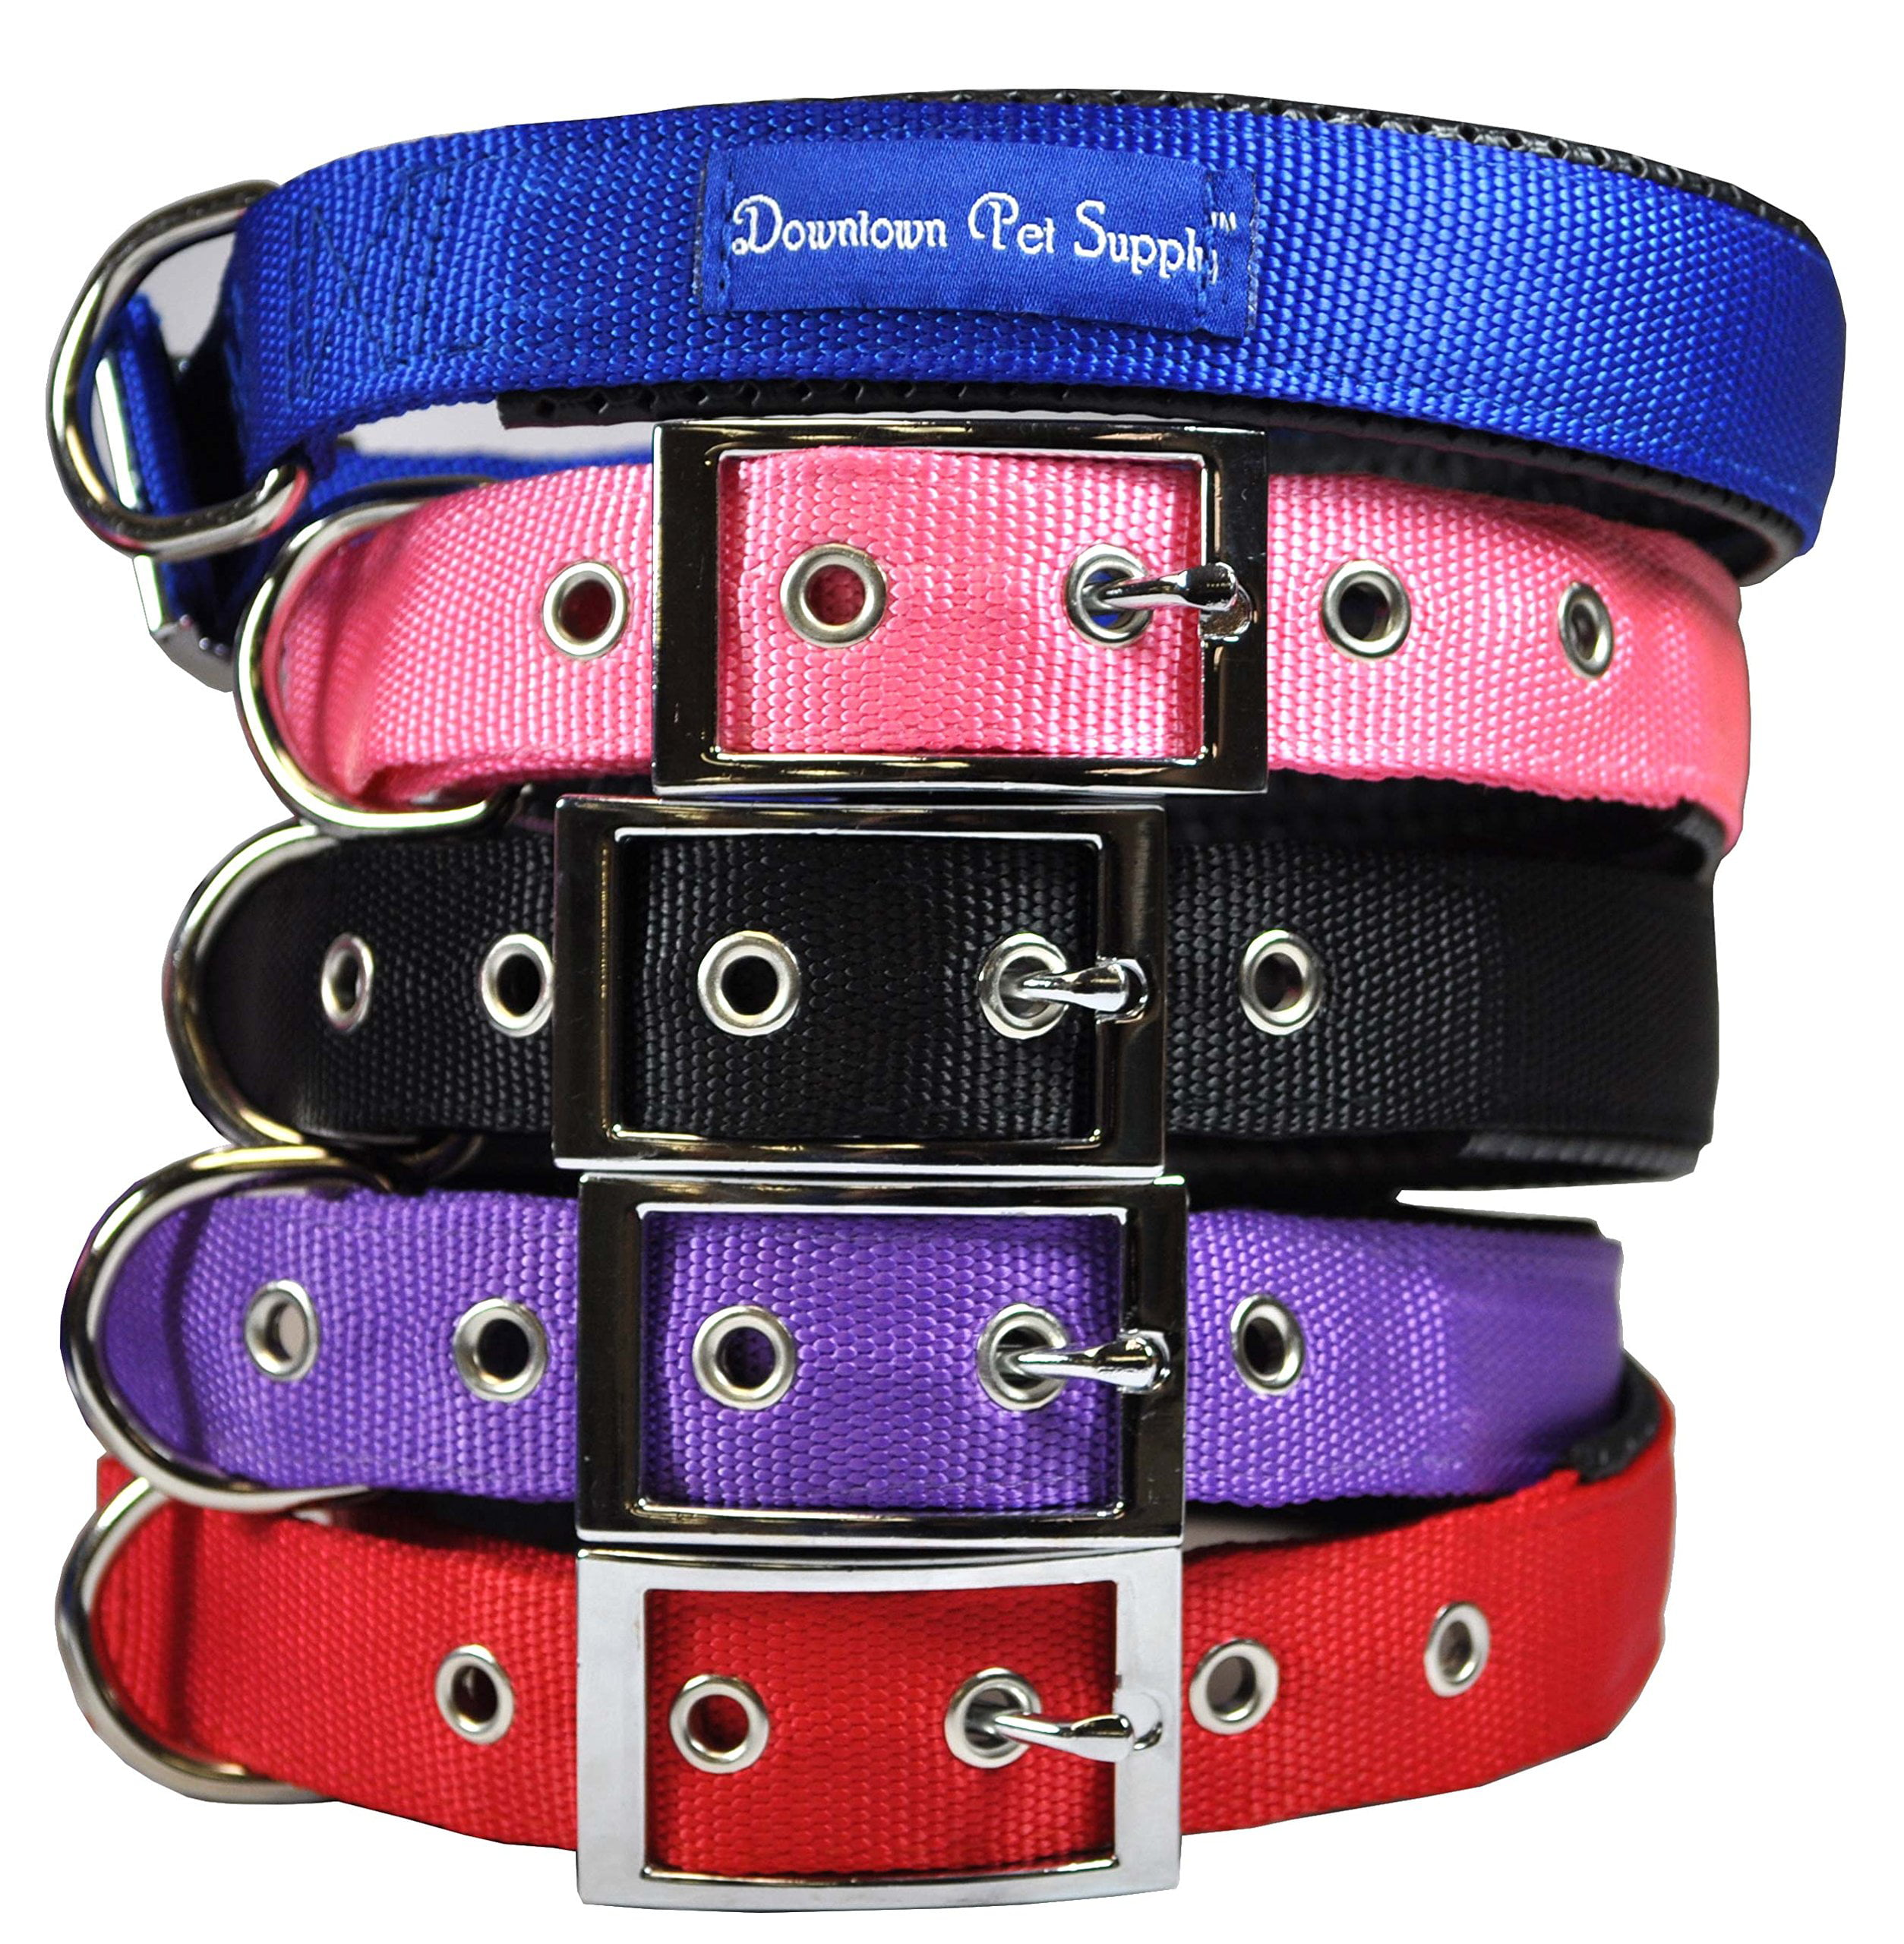 Deluxe Adjustable Thick Comfort Padded Dog Collar by Downtown Pet Supply by Downtown Pet Supply